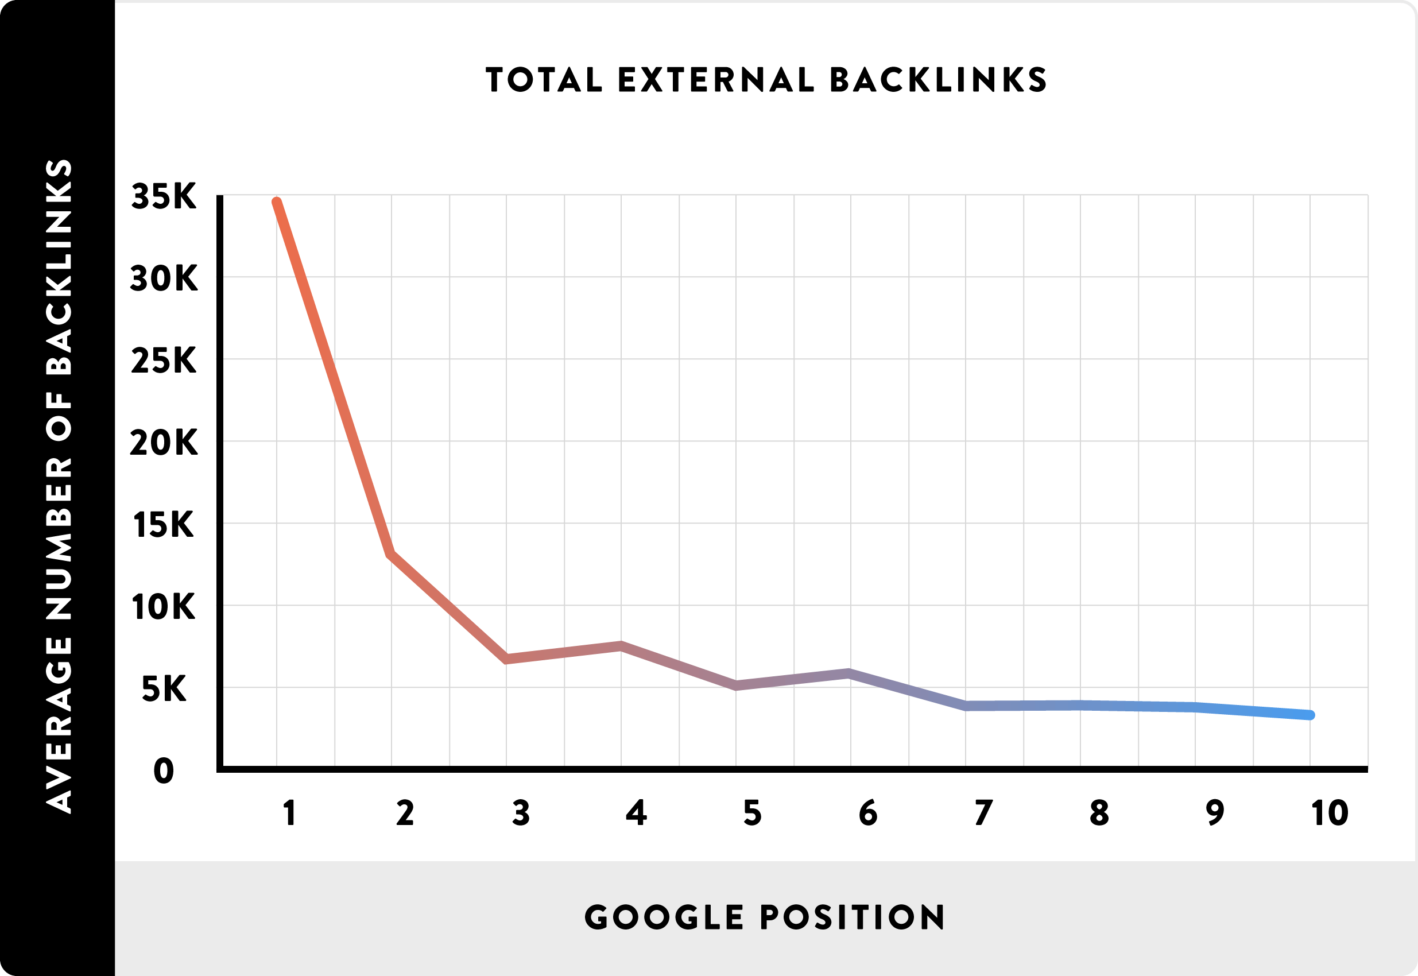 Backlinks matter! The more backlinks to your website, the higher you rank.